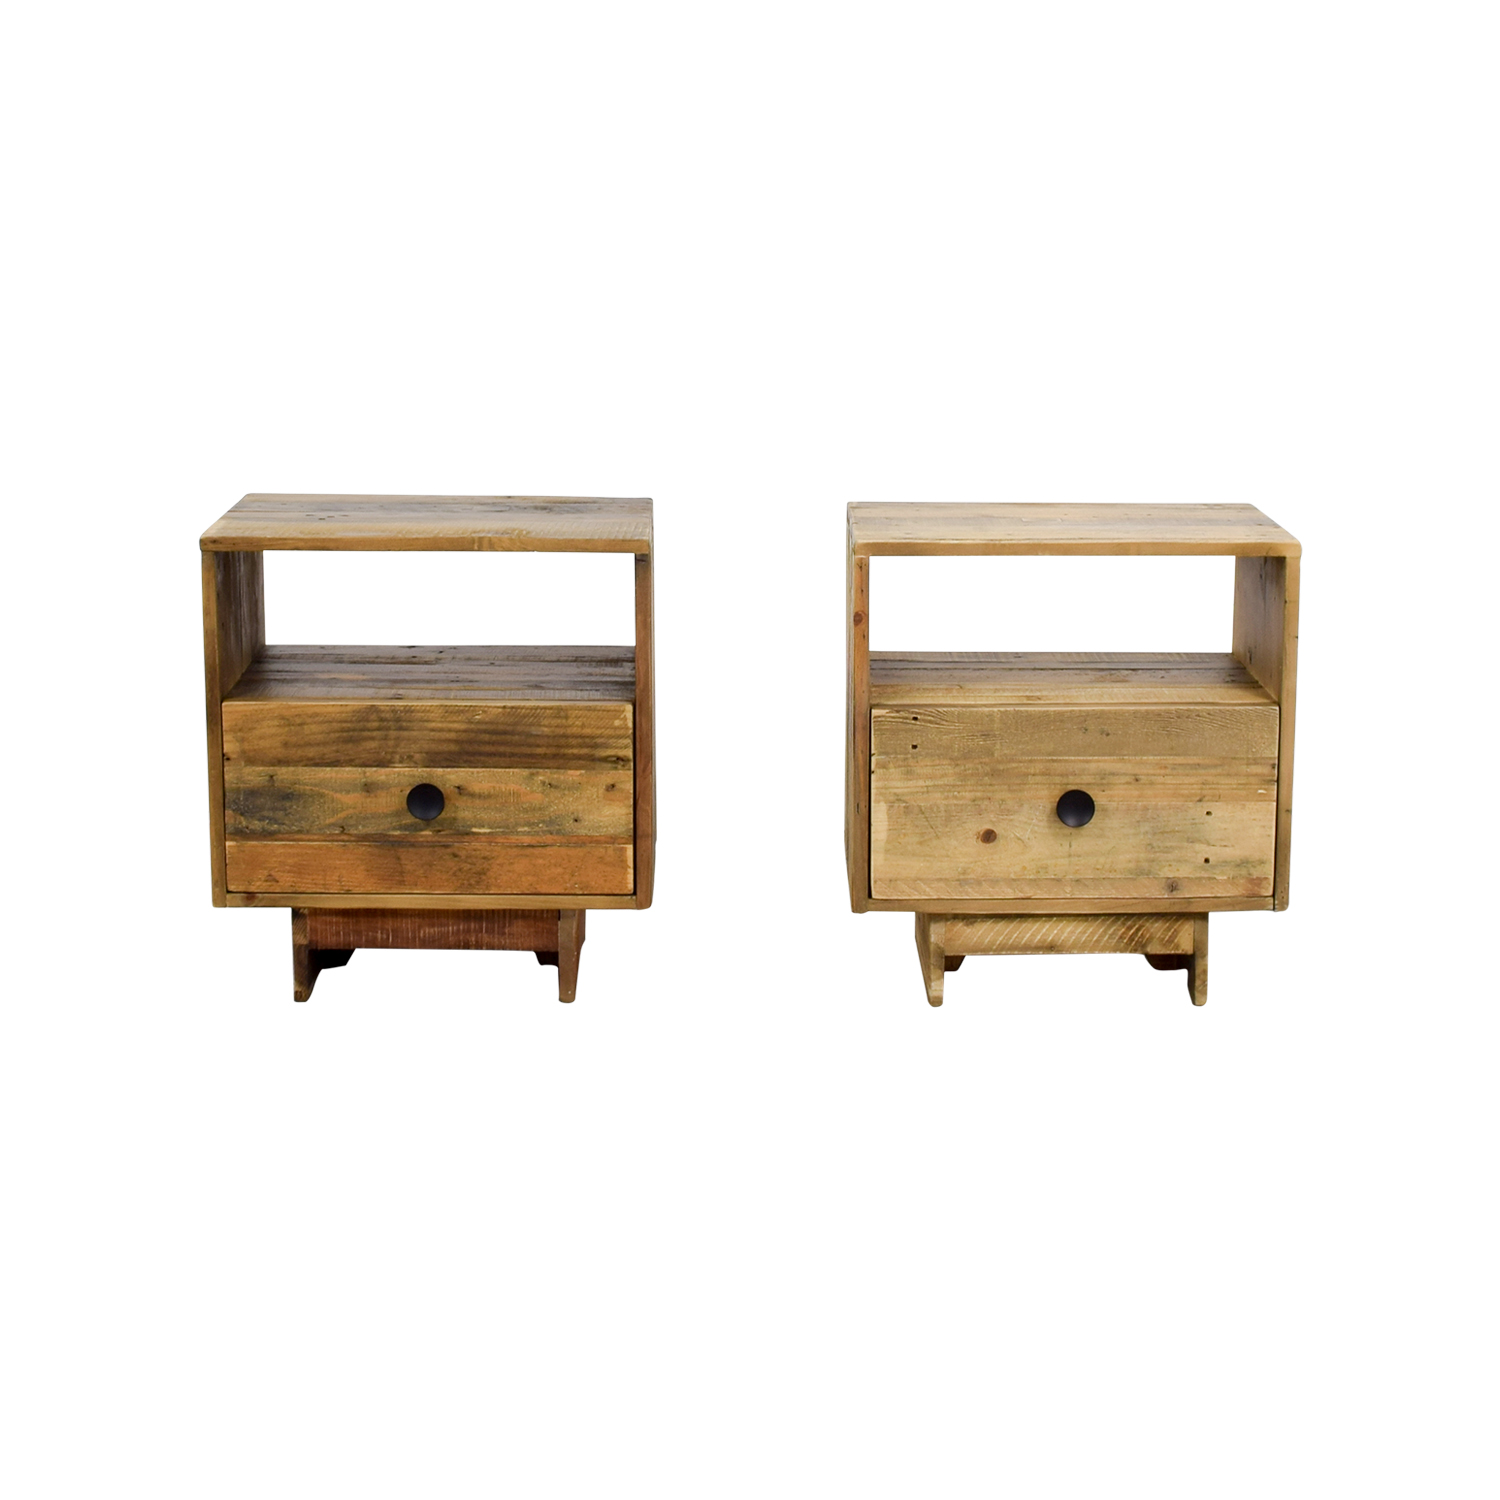 buy West Elm Emmerson Natural Reclaimed Wood Nightstand West Elm End Tables